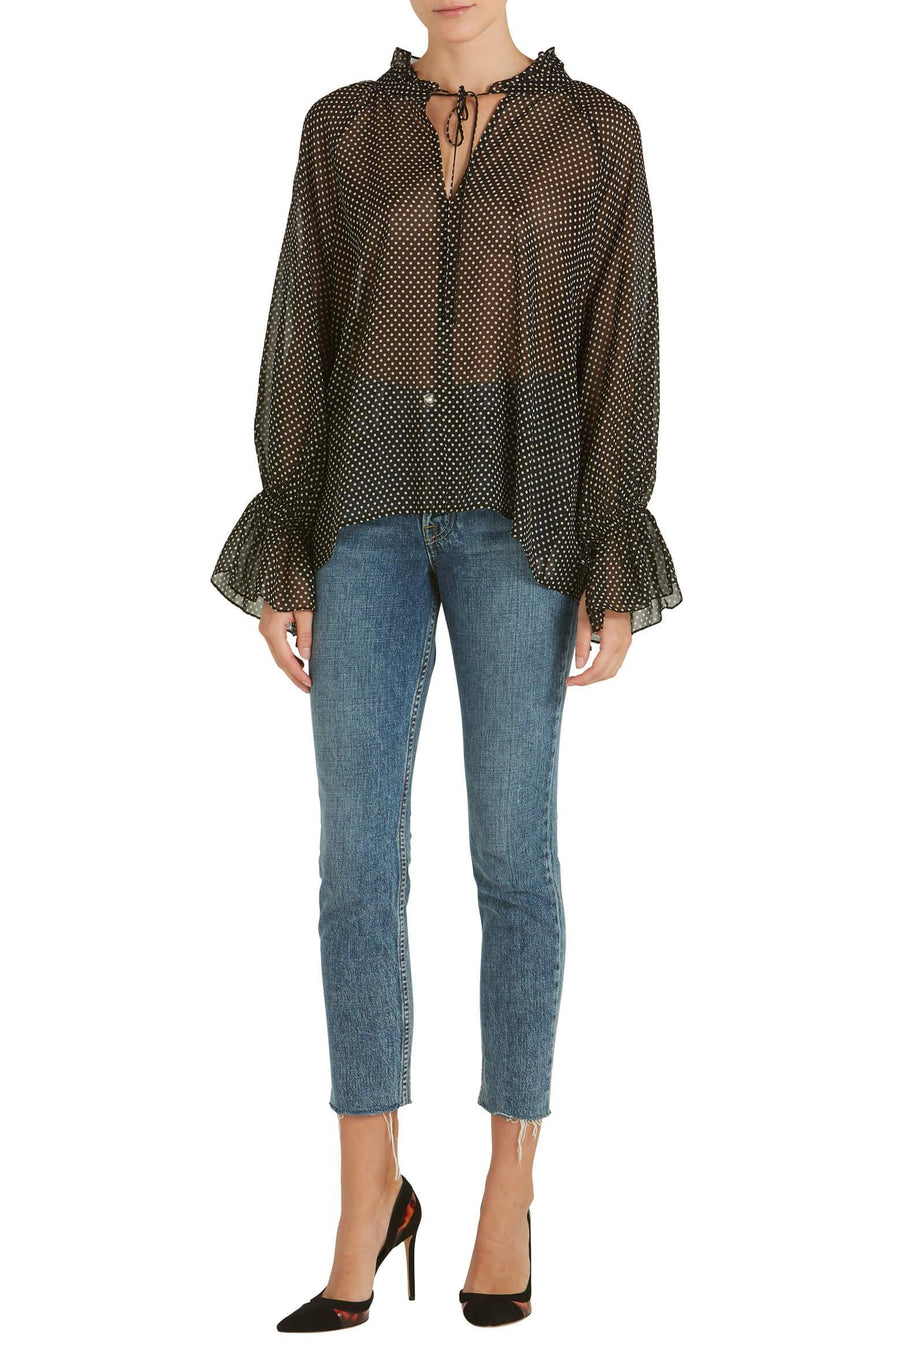 Nili Lotan Royan Blouse from The New Trend